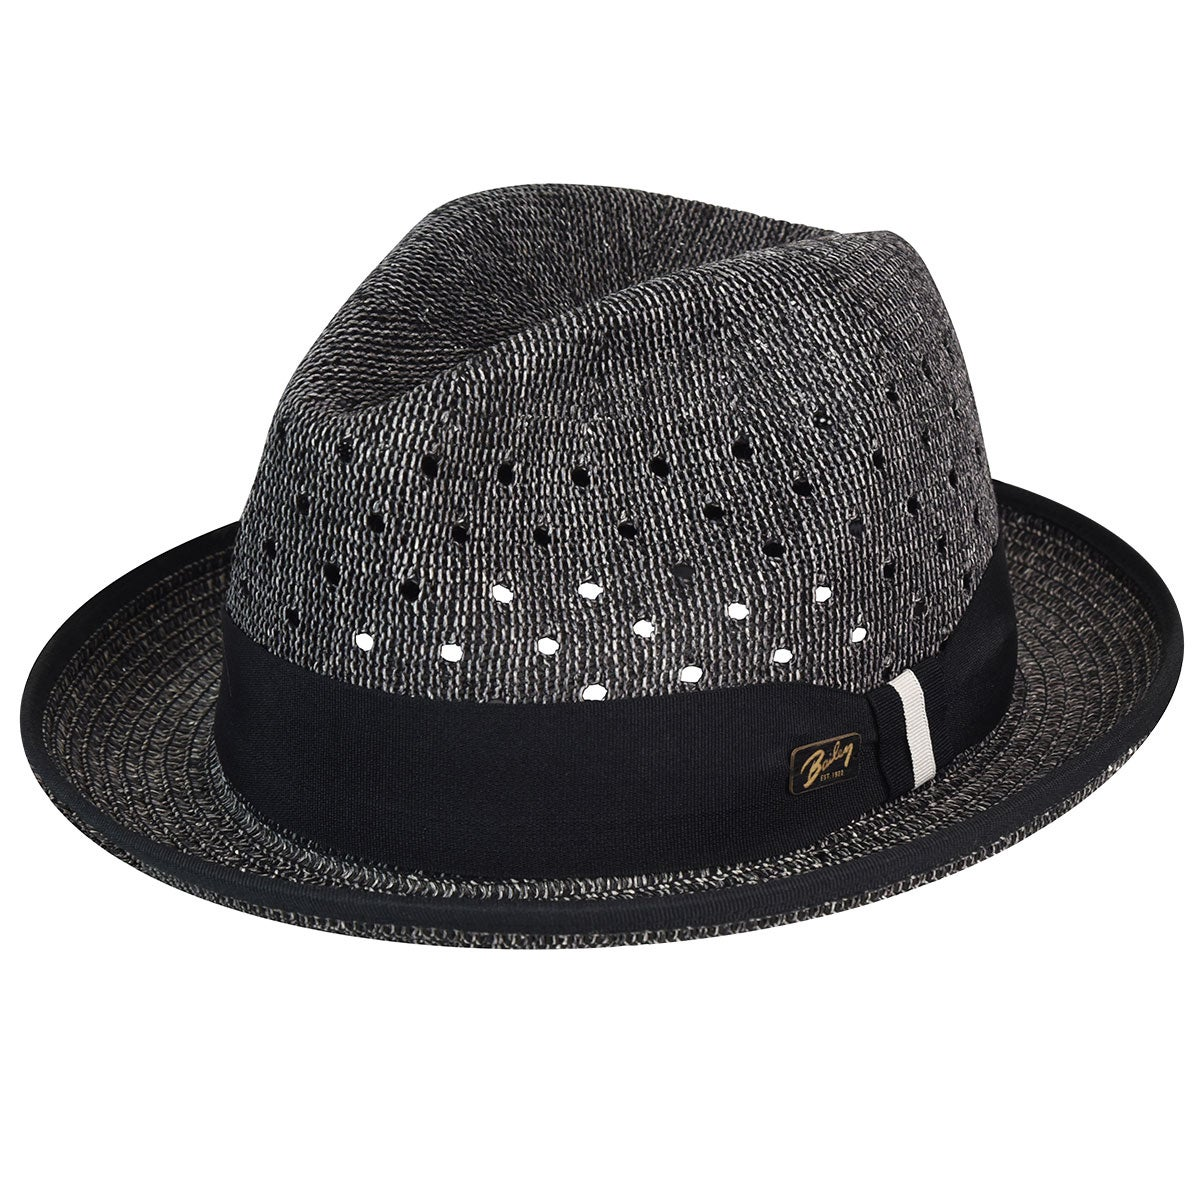 Bailey of Hollywood Bascom Trilby in Black Heather